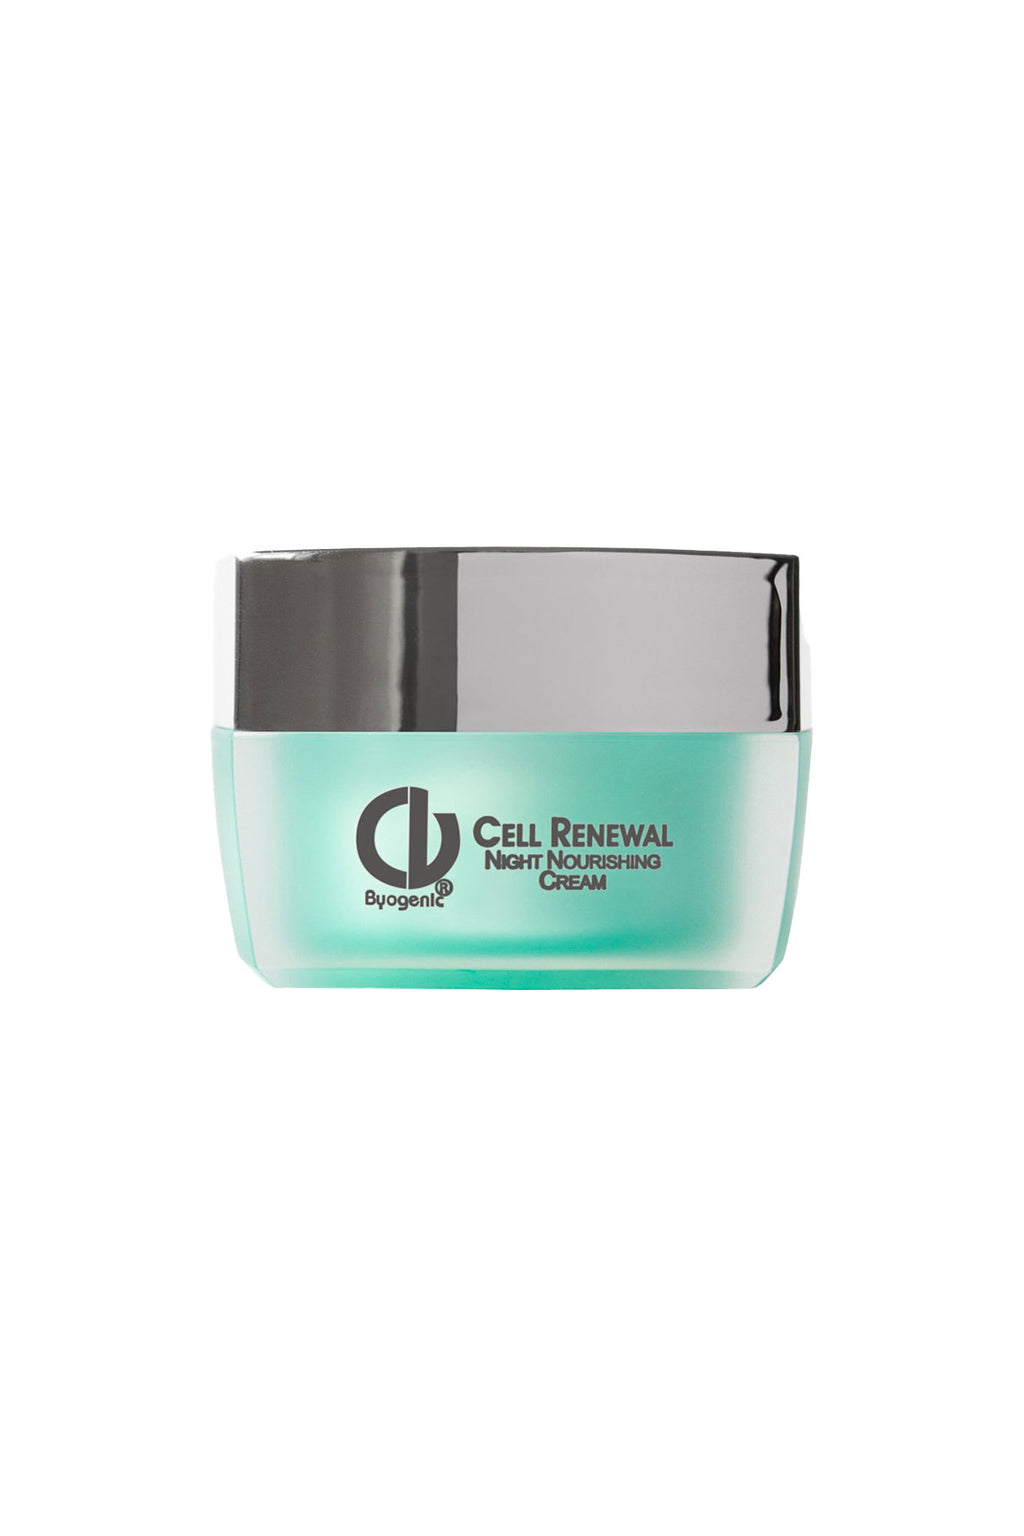 Christine Valmy Cell Renewal cream, for sensitive and mature skin.